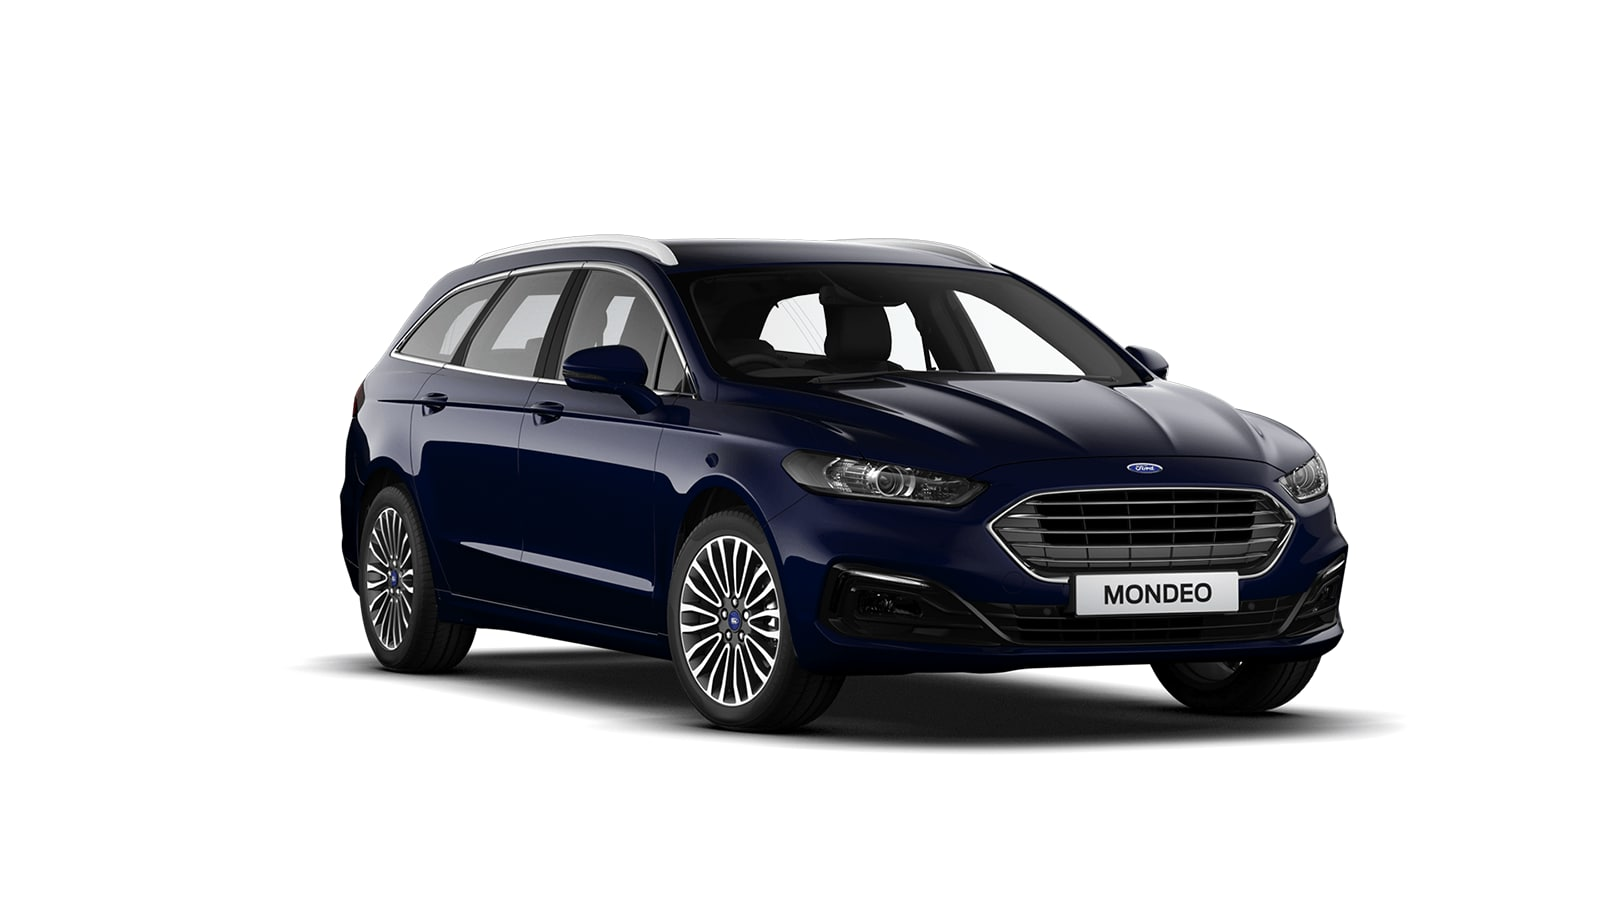 Ford Mondeo Titanium Edition 2.0L EcoBlue 150PS at Browne & Day